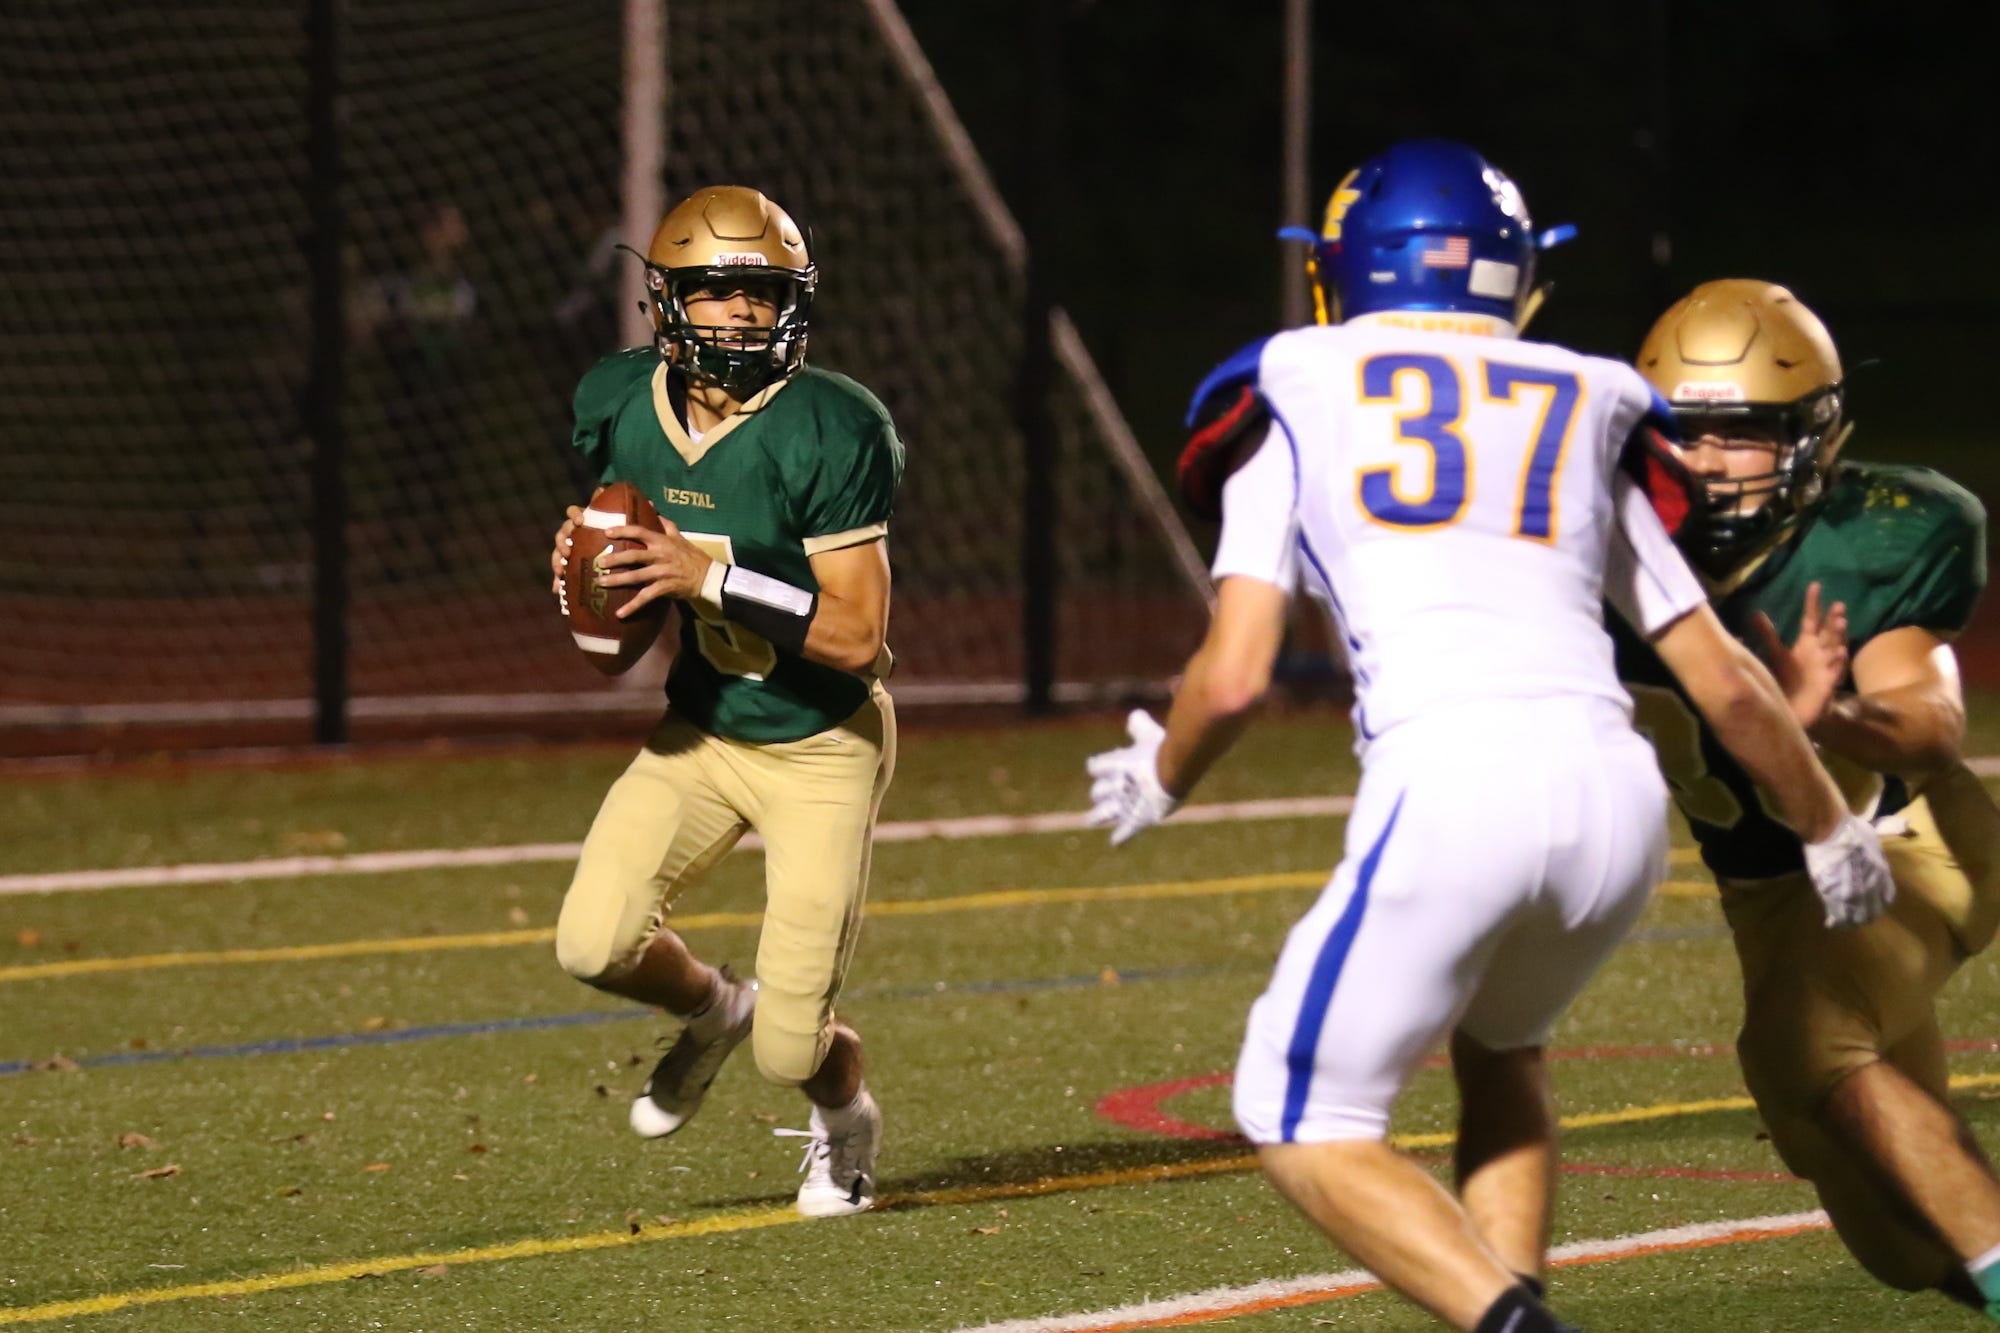 Quarterback J.P. Sacco and Vestal will face undefeated Indian River on Friday night.